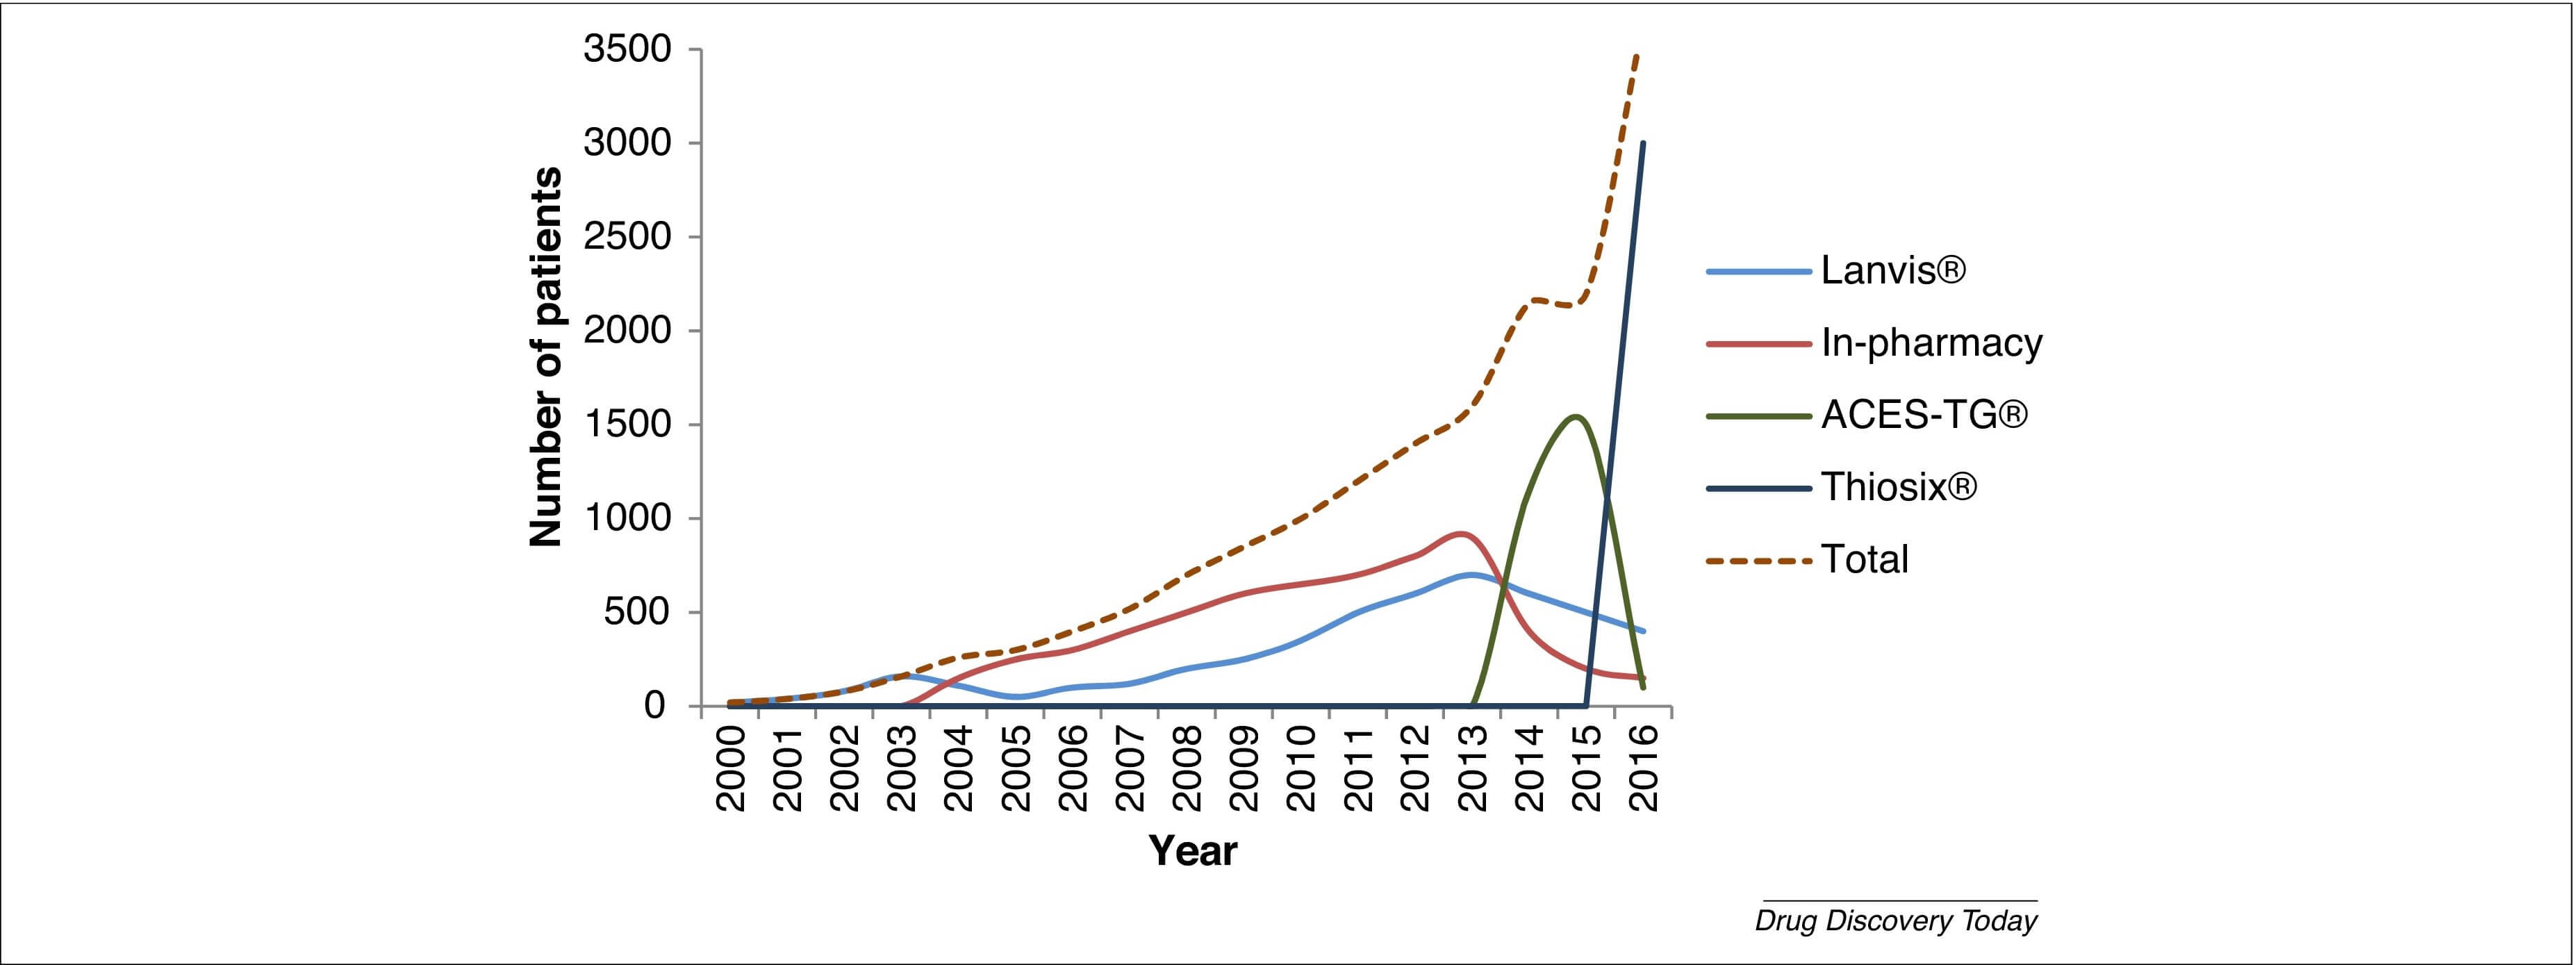 Figure 3. The use of thioguanine compounds in patients with inflammatory bowel disease over the years in The Netherlands